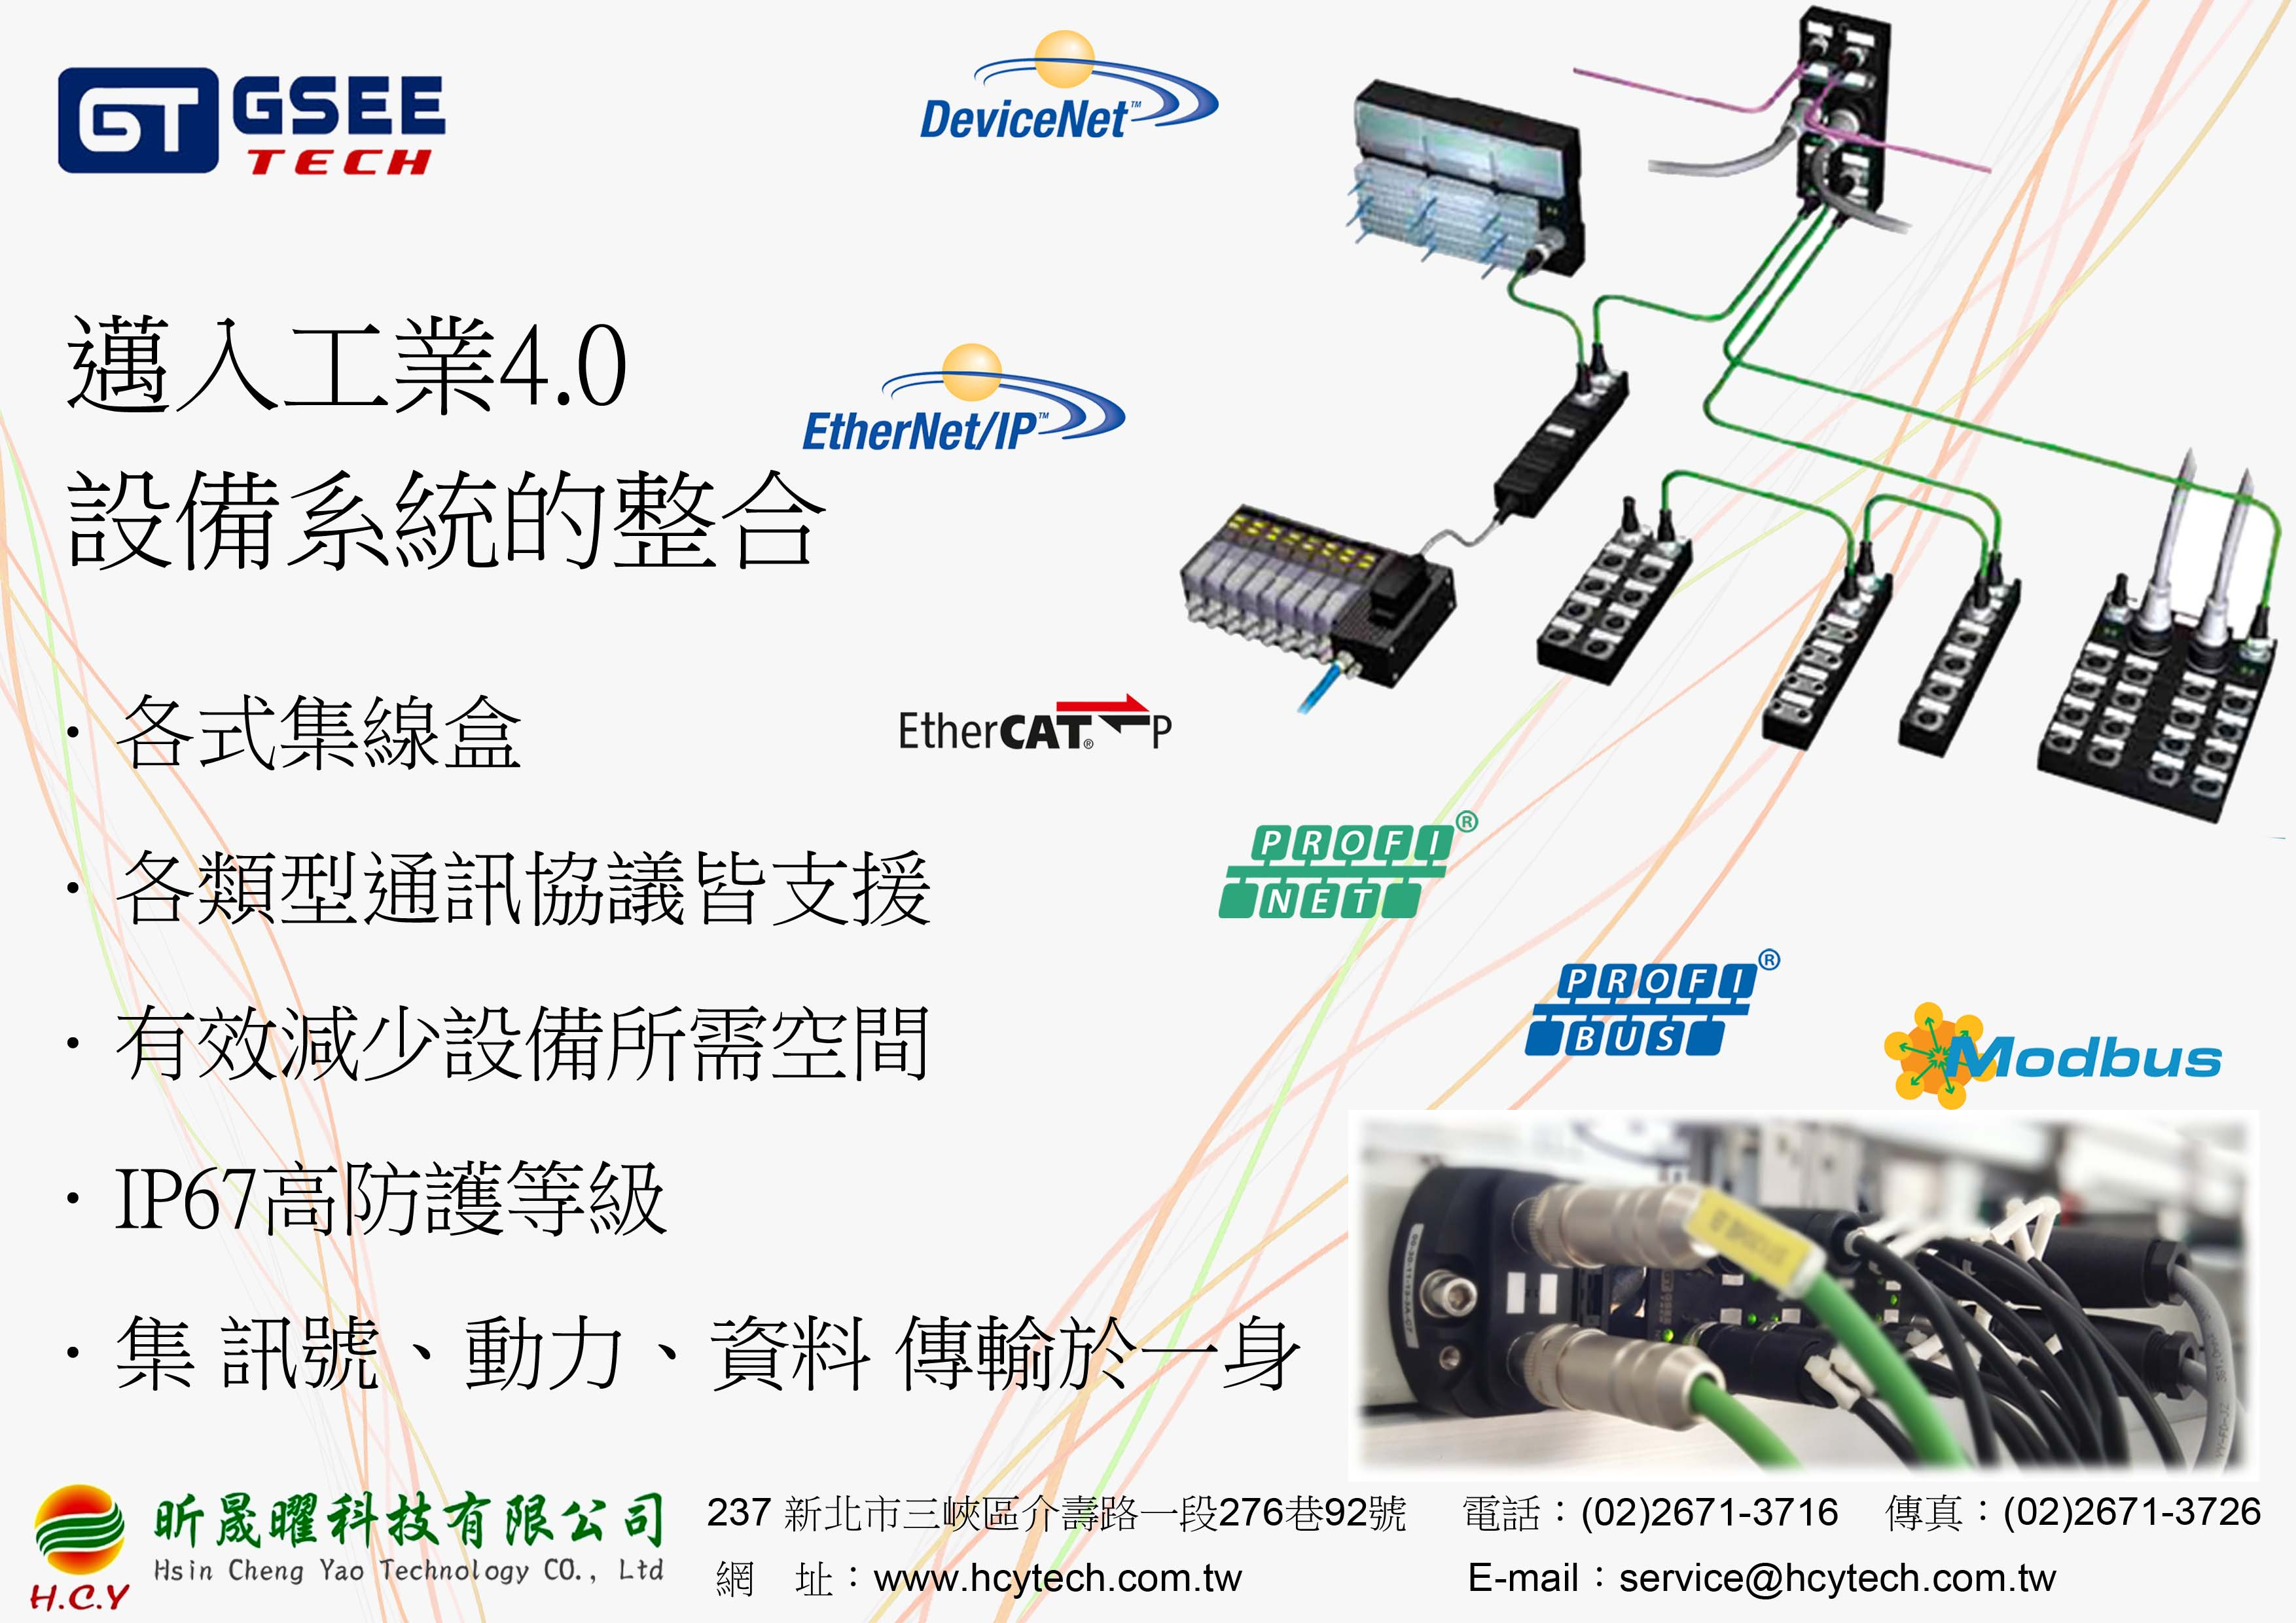 hcy-gsee-fieldbus-modules